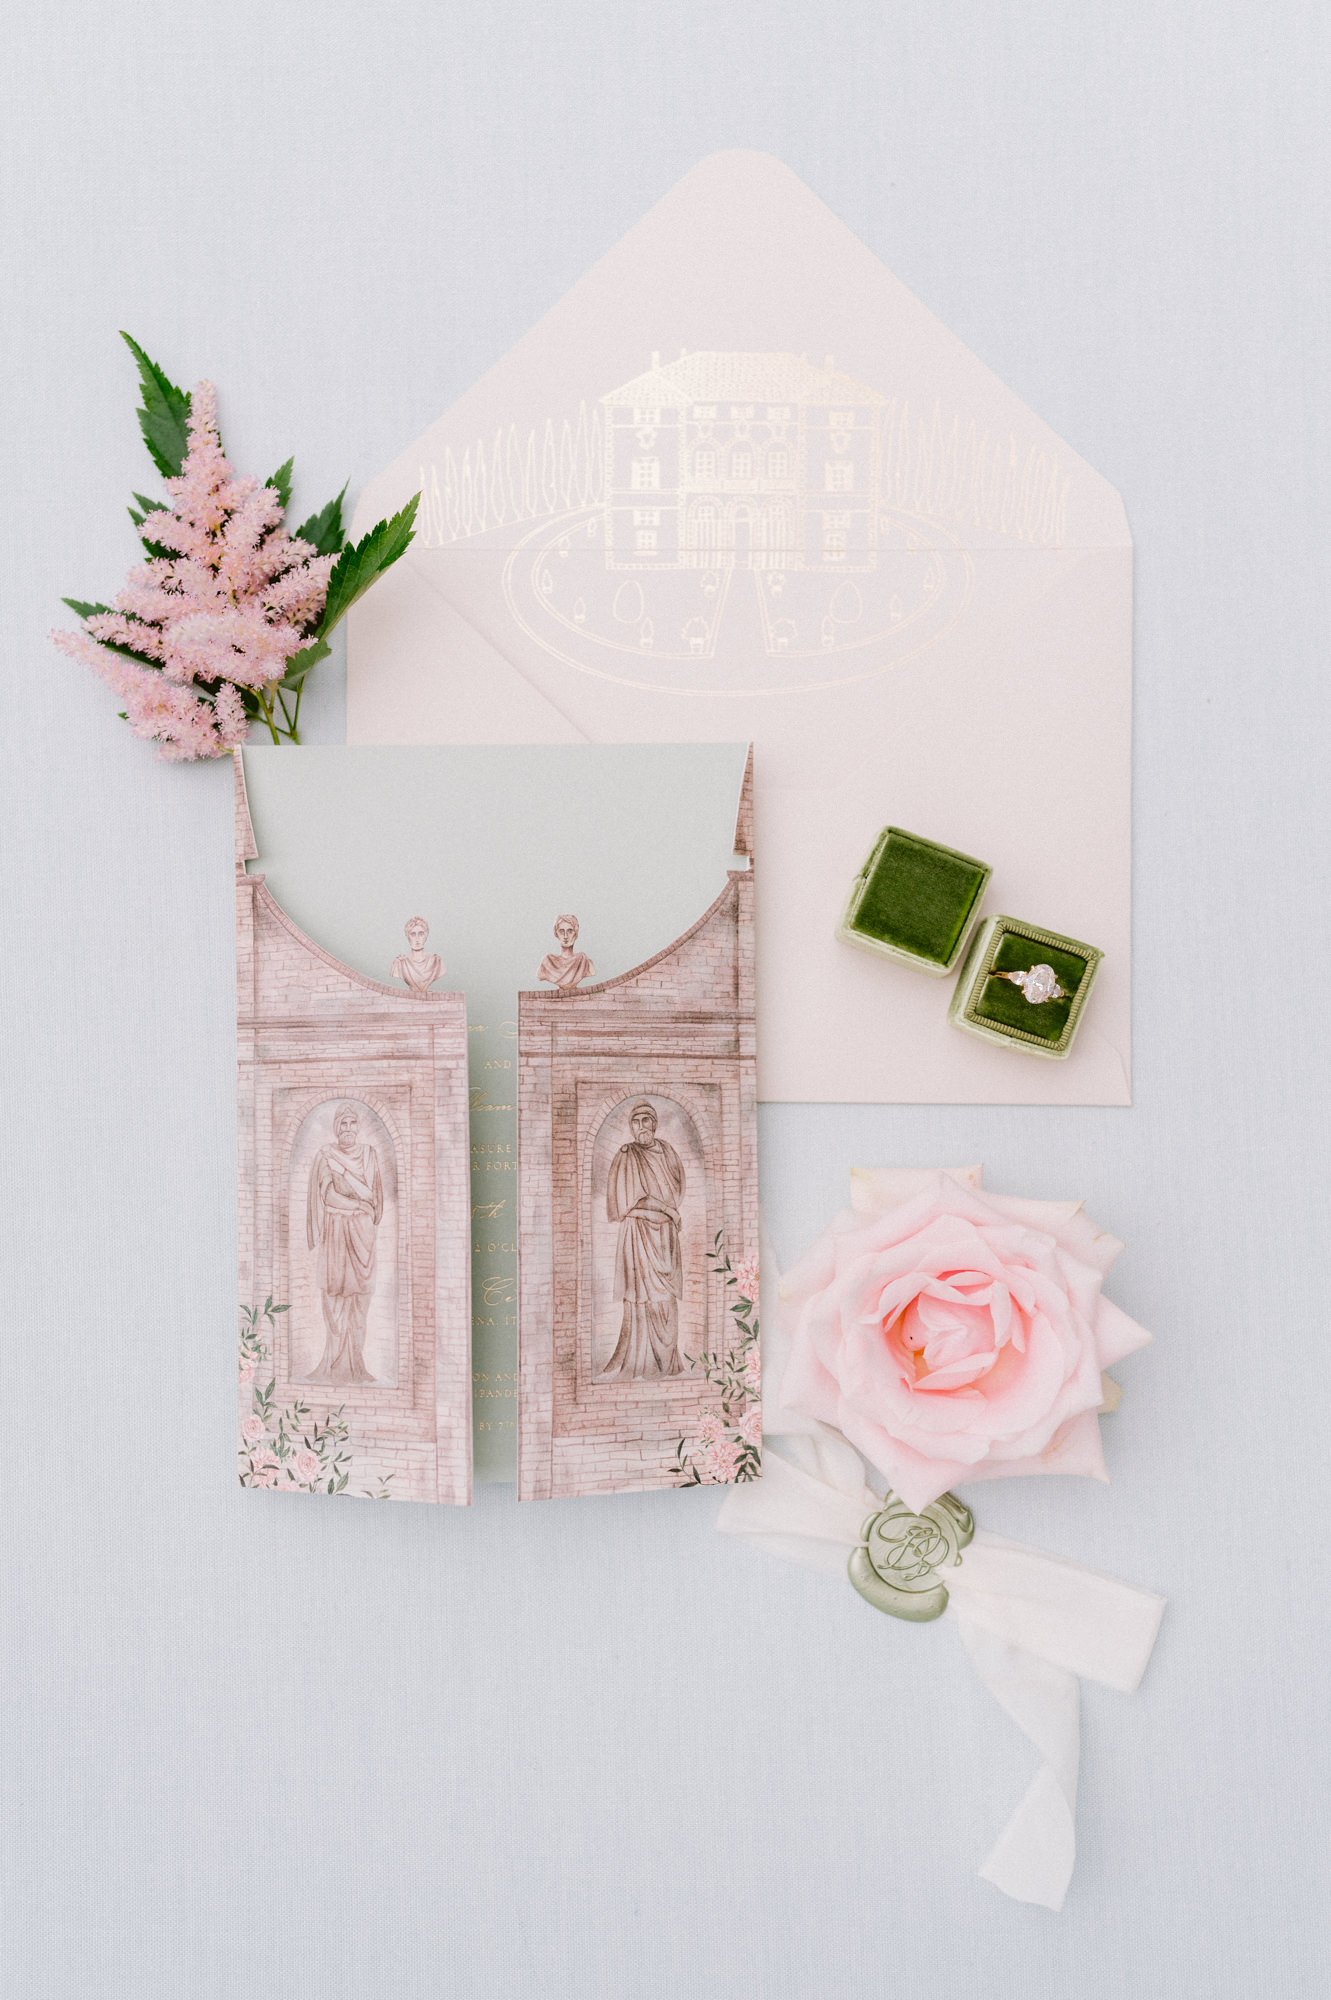 Hand-painted pink invitations for Villa Cimbrone - photo by Gianluca Adovasio Photography